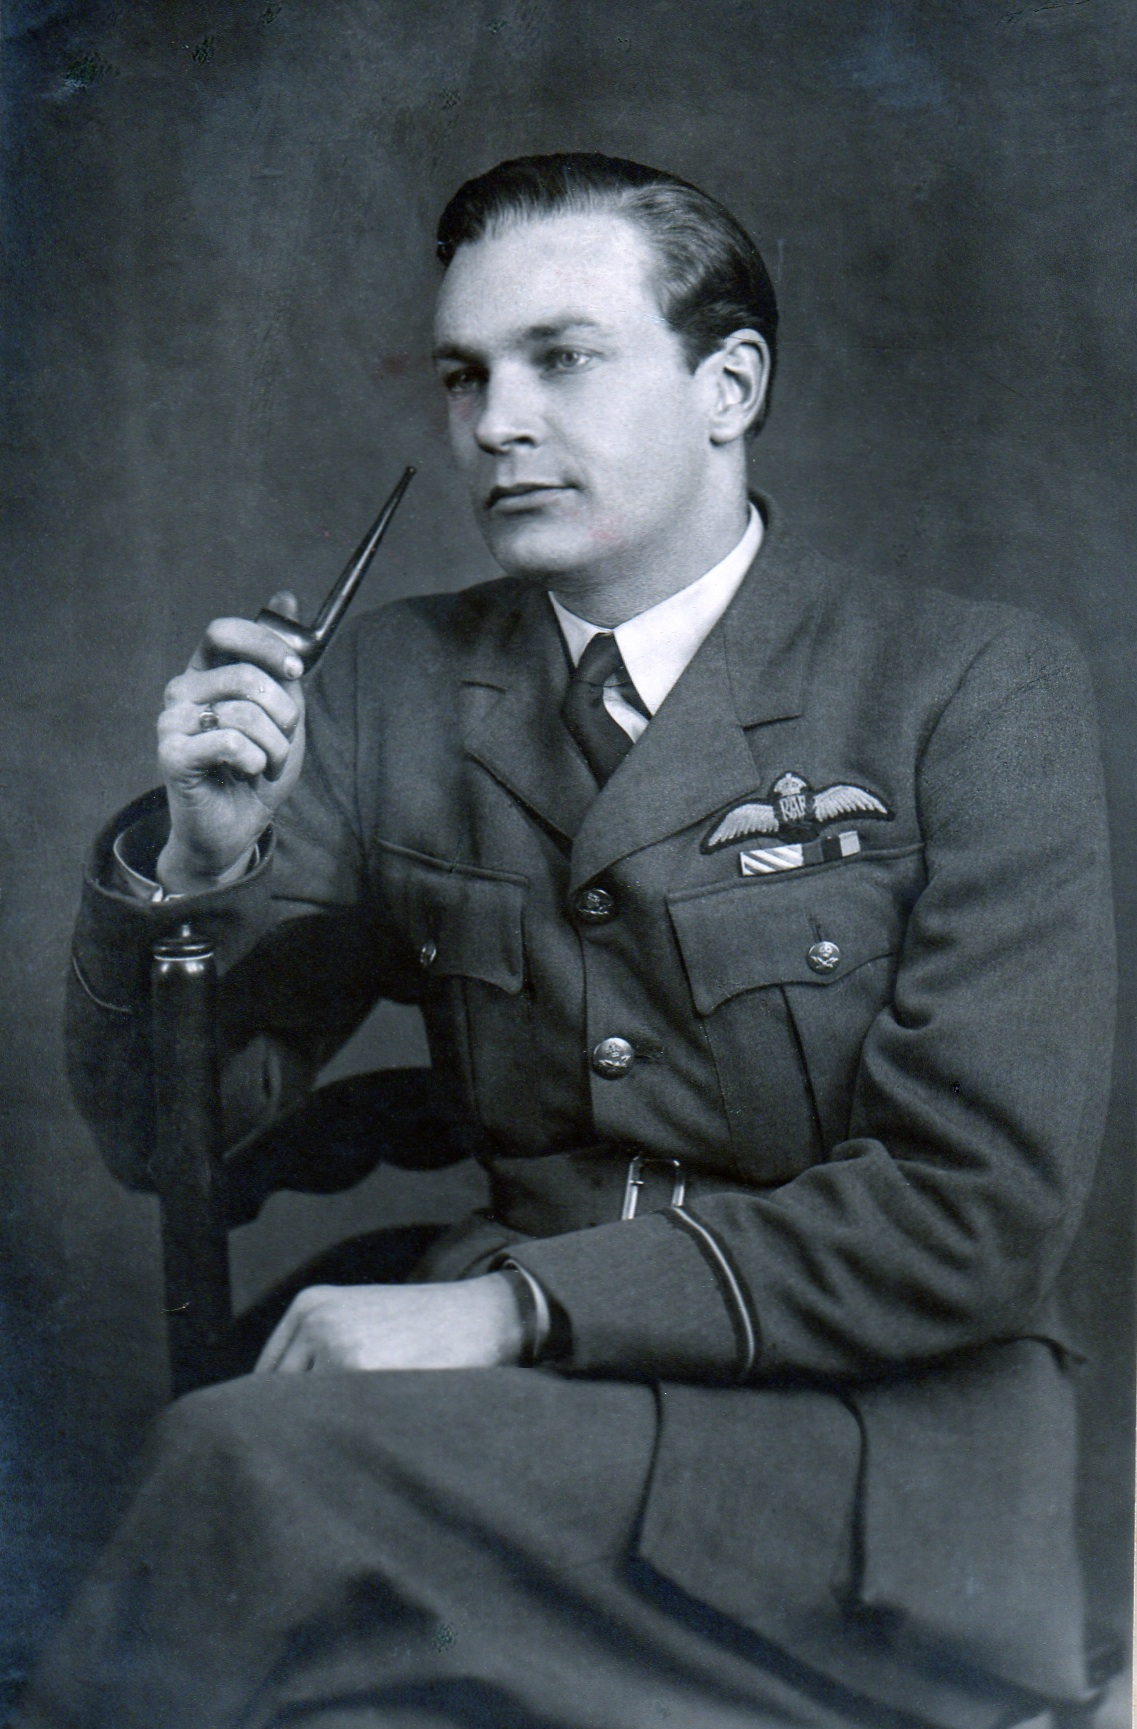 Jack Currie in 1943